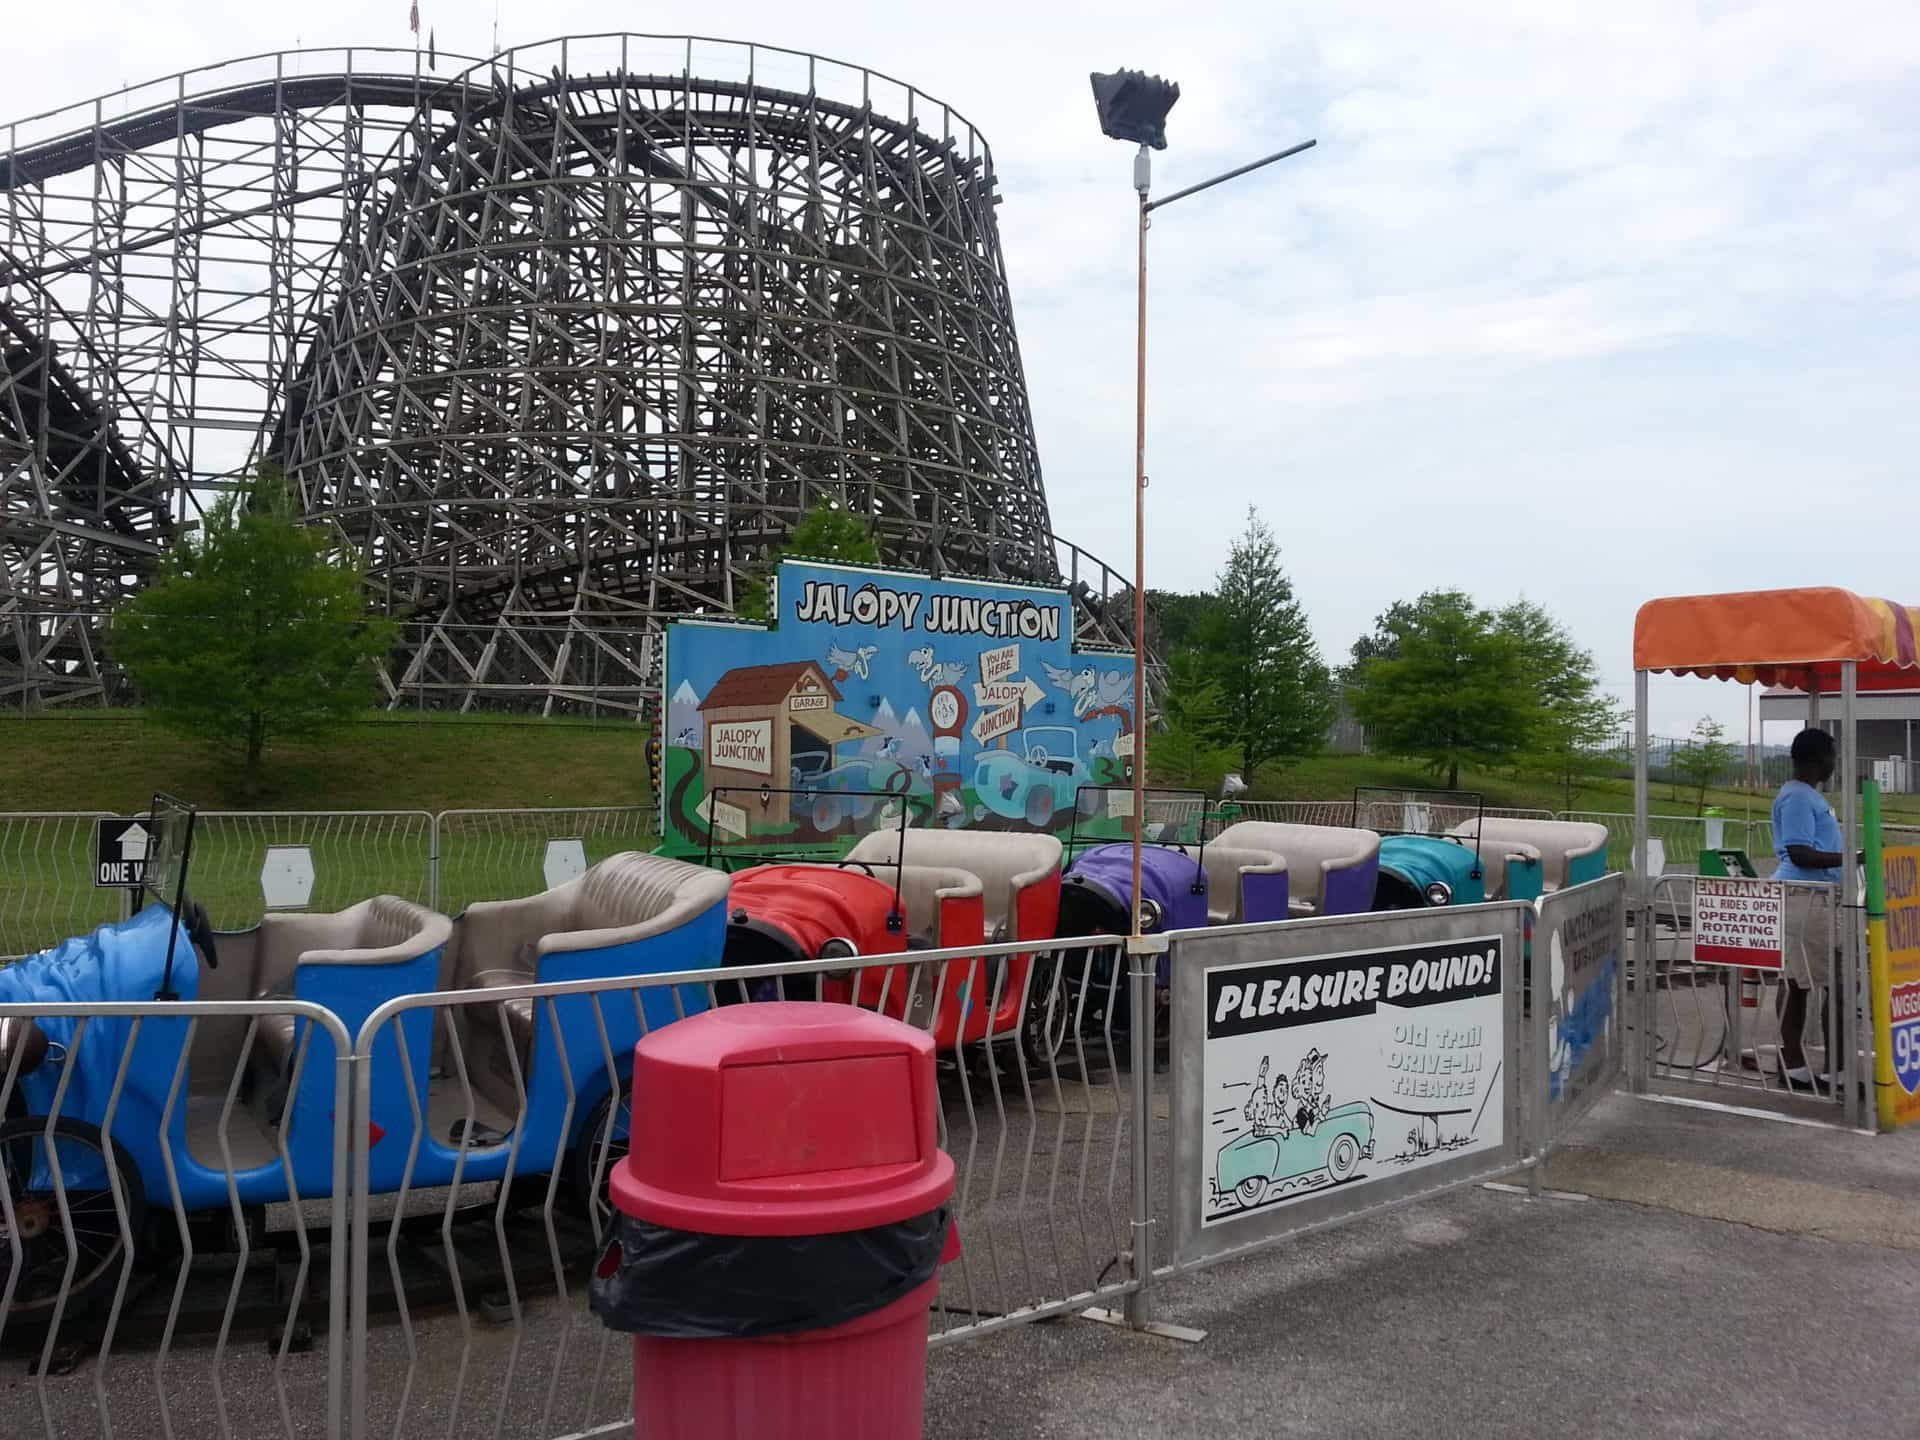 Beech Bend Park and Splash Lagoon - Cars for the Roller Coaster